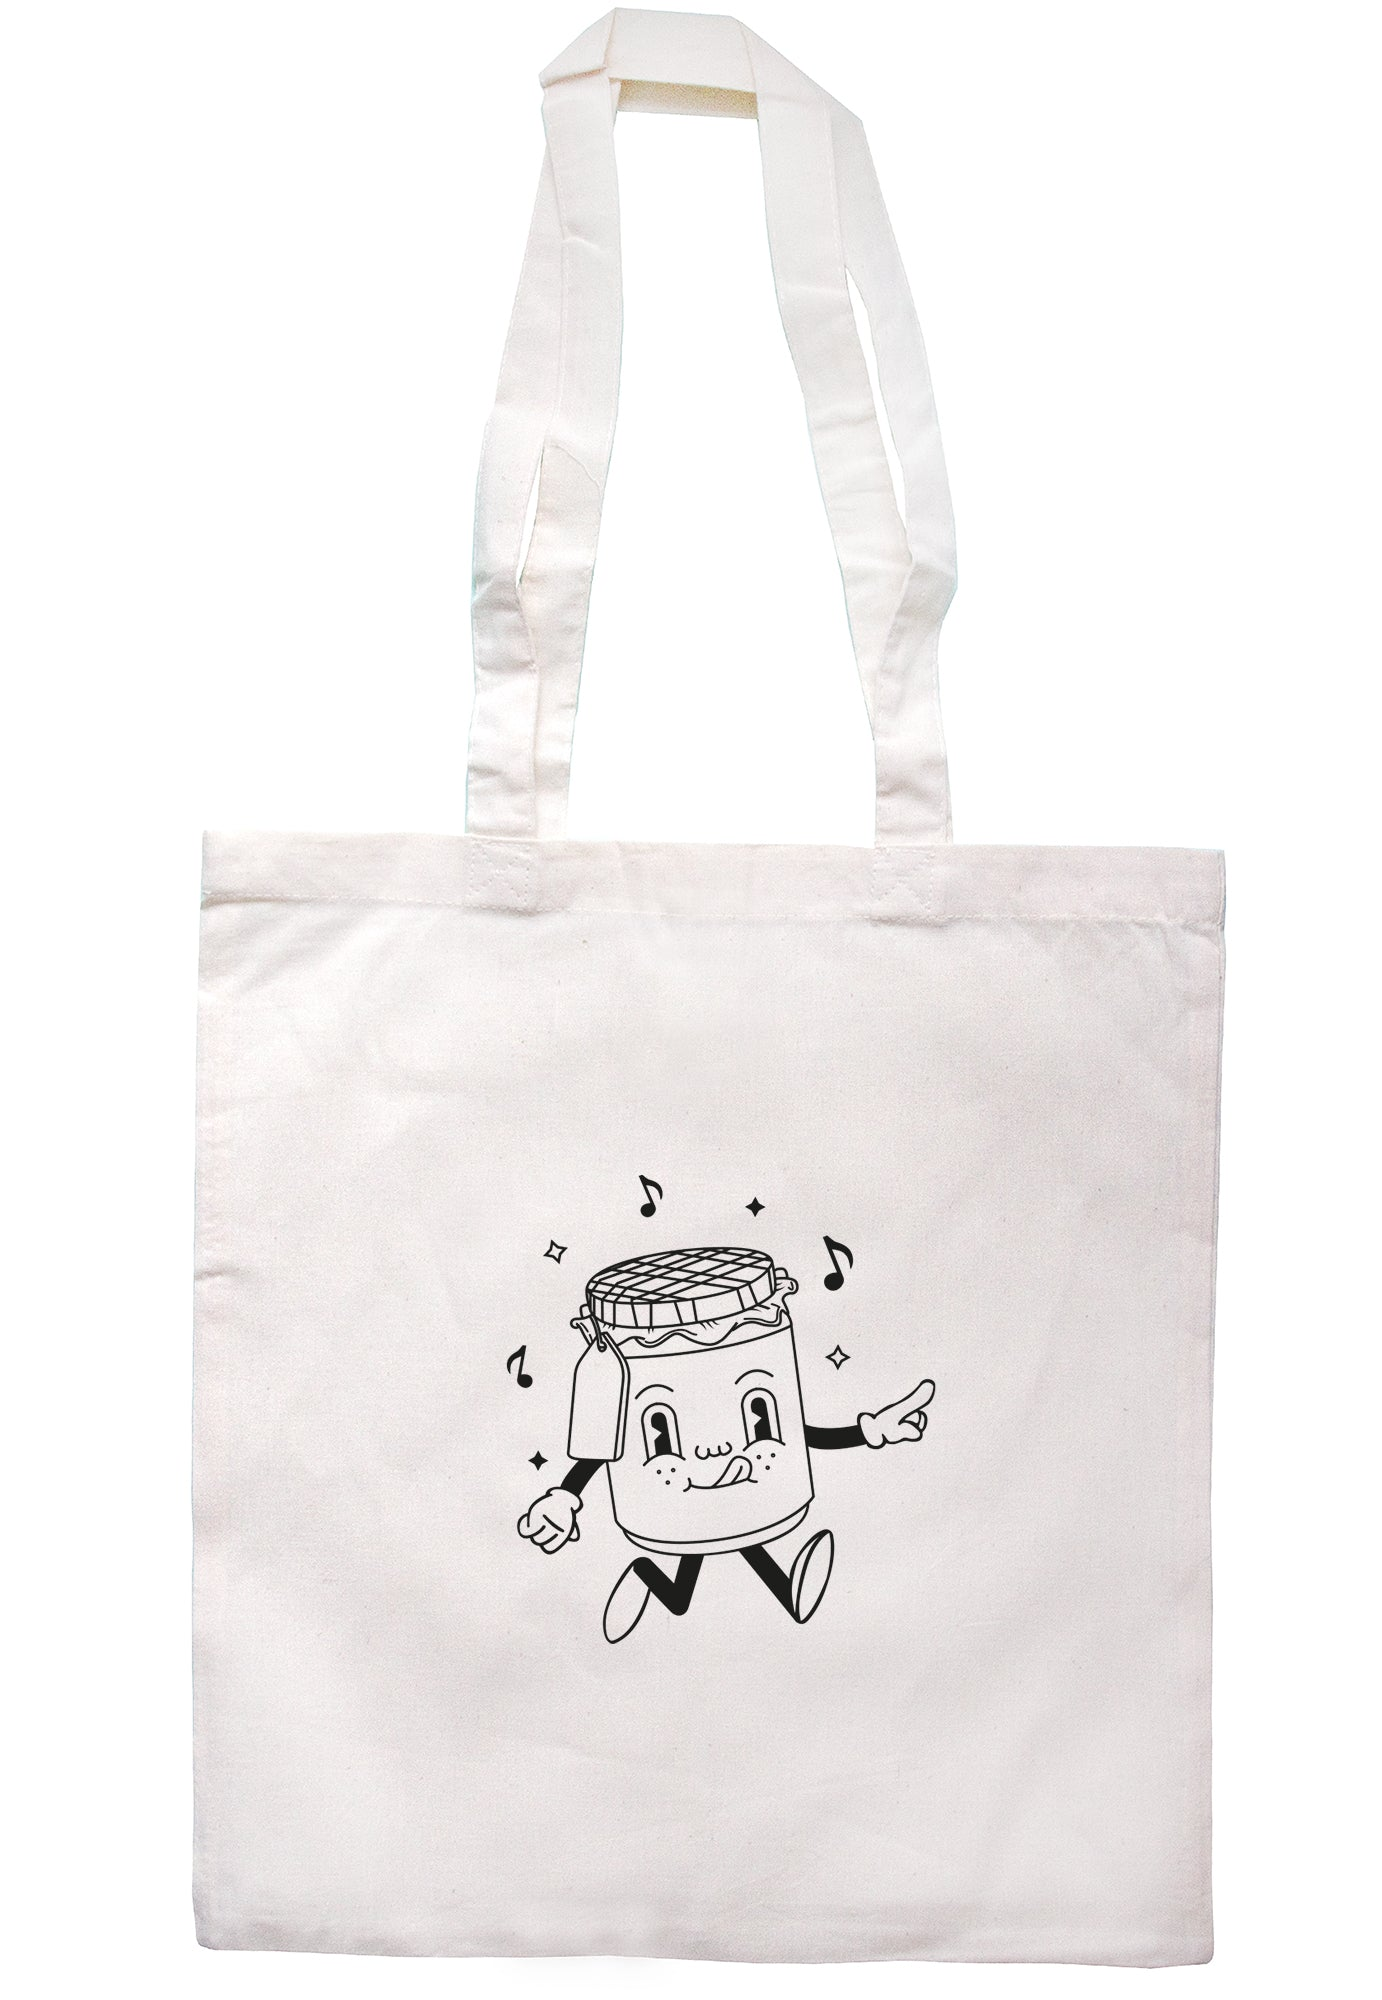 Jam Illustration Tote Bag S1151 - Illustrated Identity Ltd.